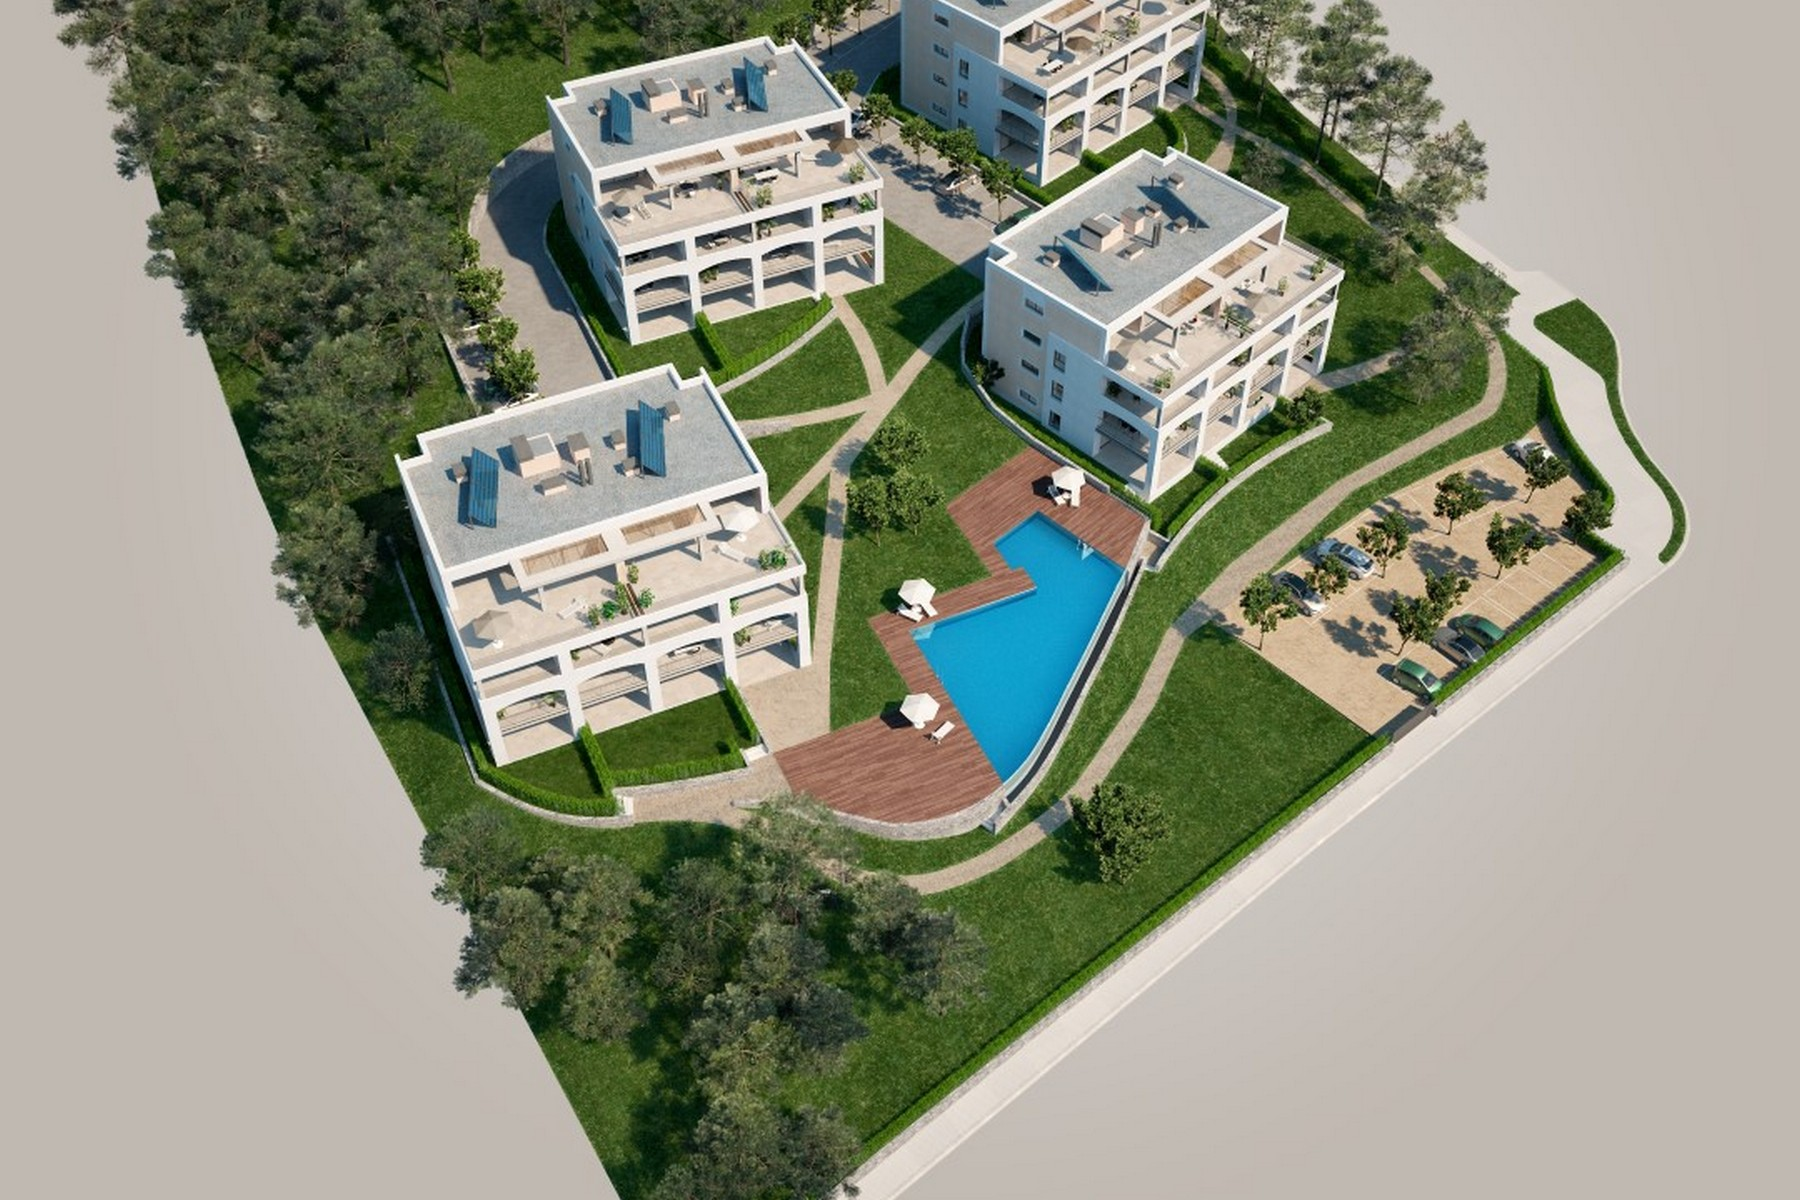 公寓 為 出售 在 New apartments in Santa Ponsa Santa Ponsa, 馬婁卡, 07180 西班牙